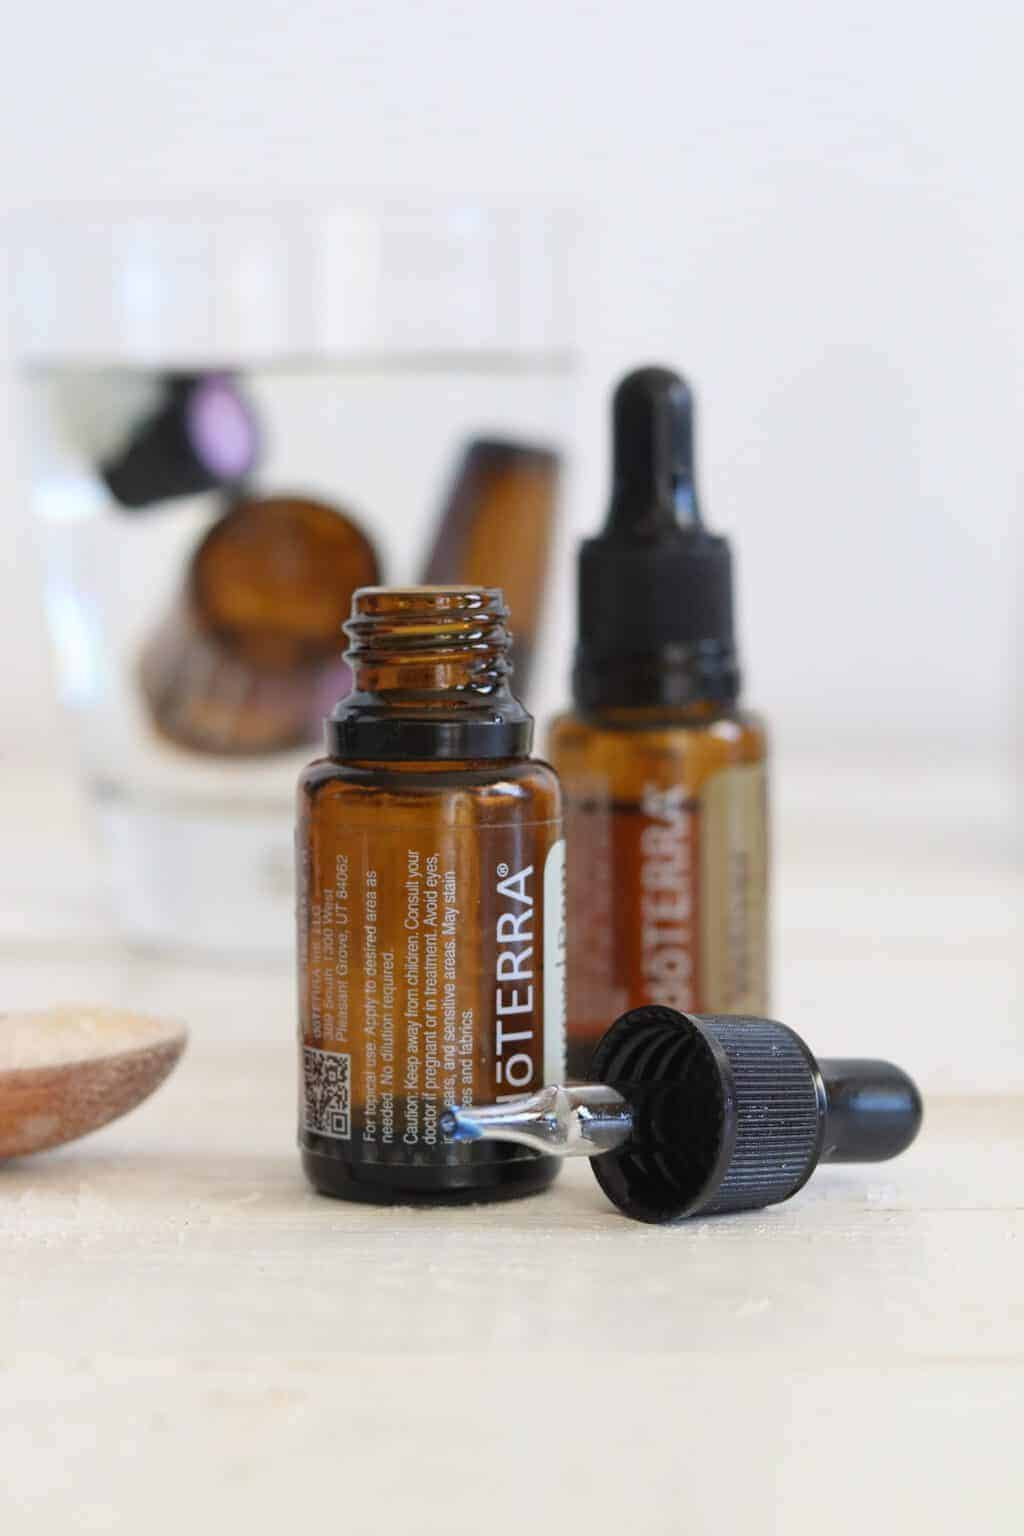 Turn your empty essential oil bottle into a face serum with this simple essential oil hack.